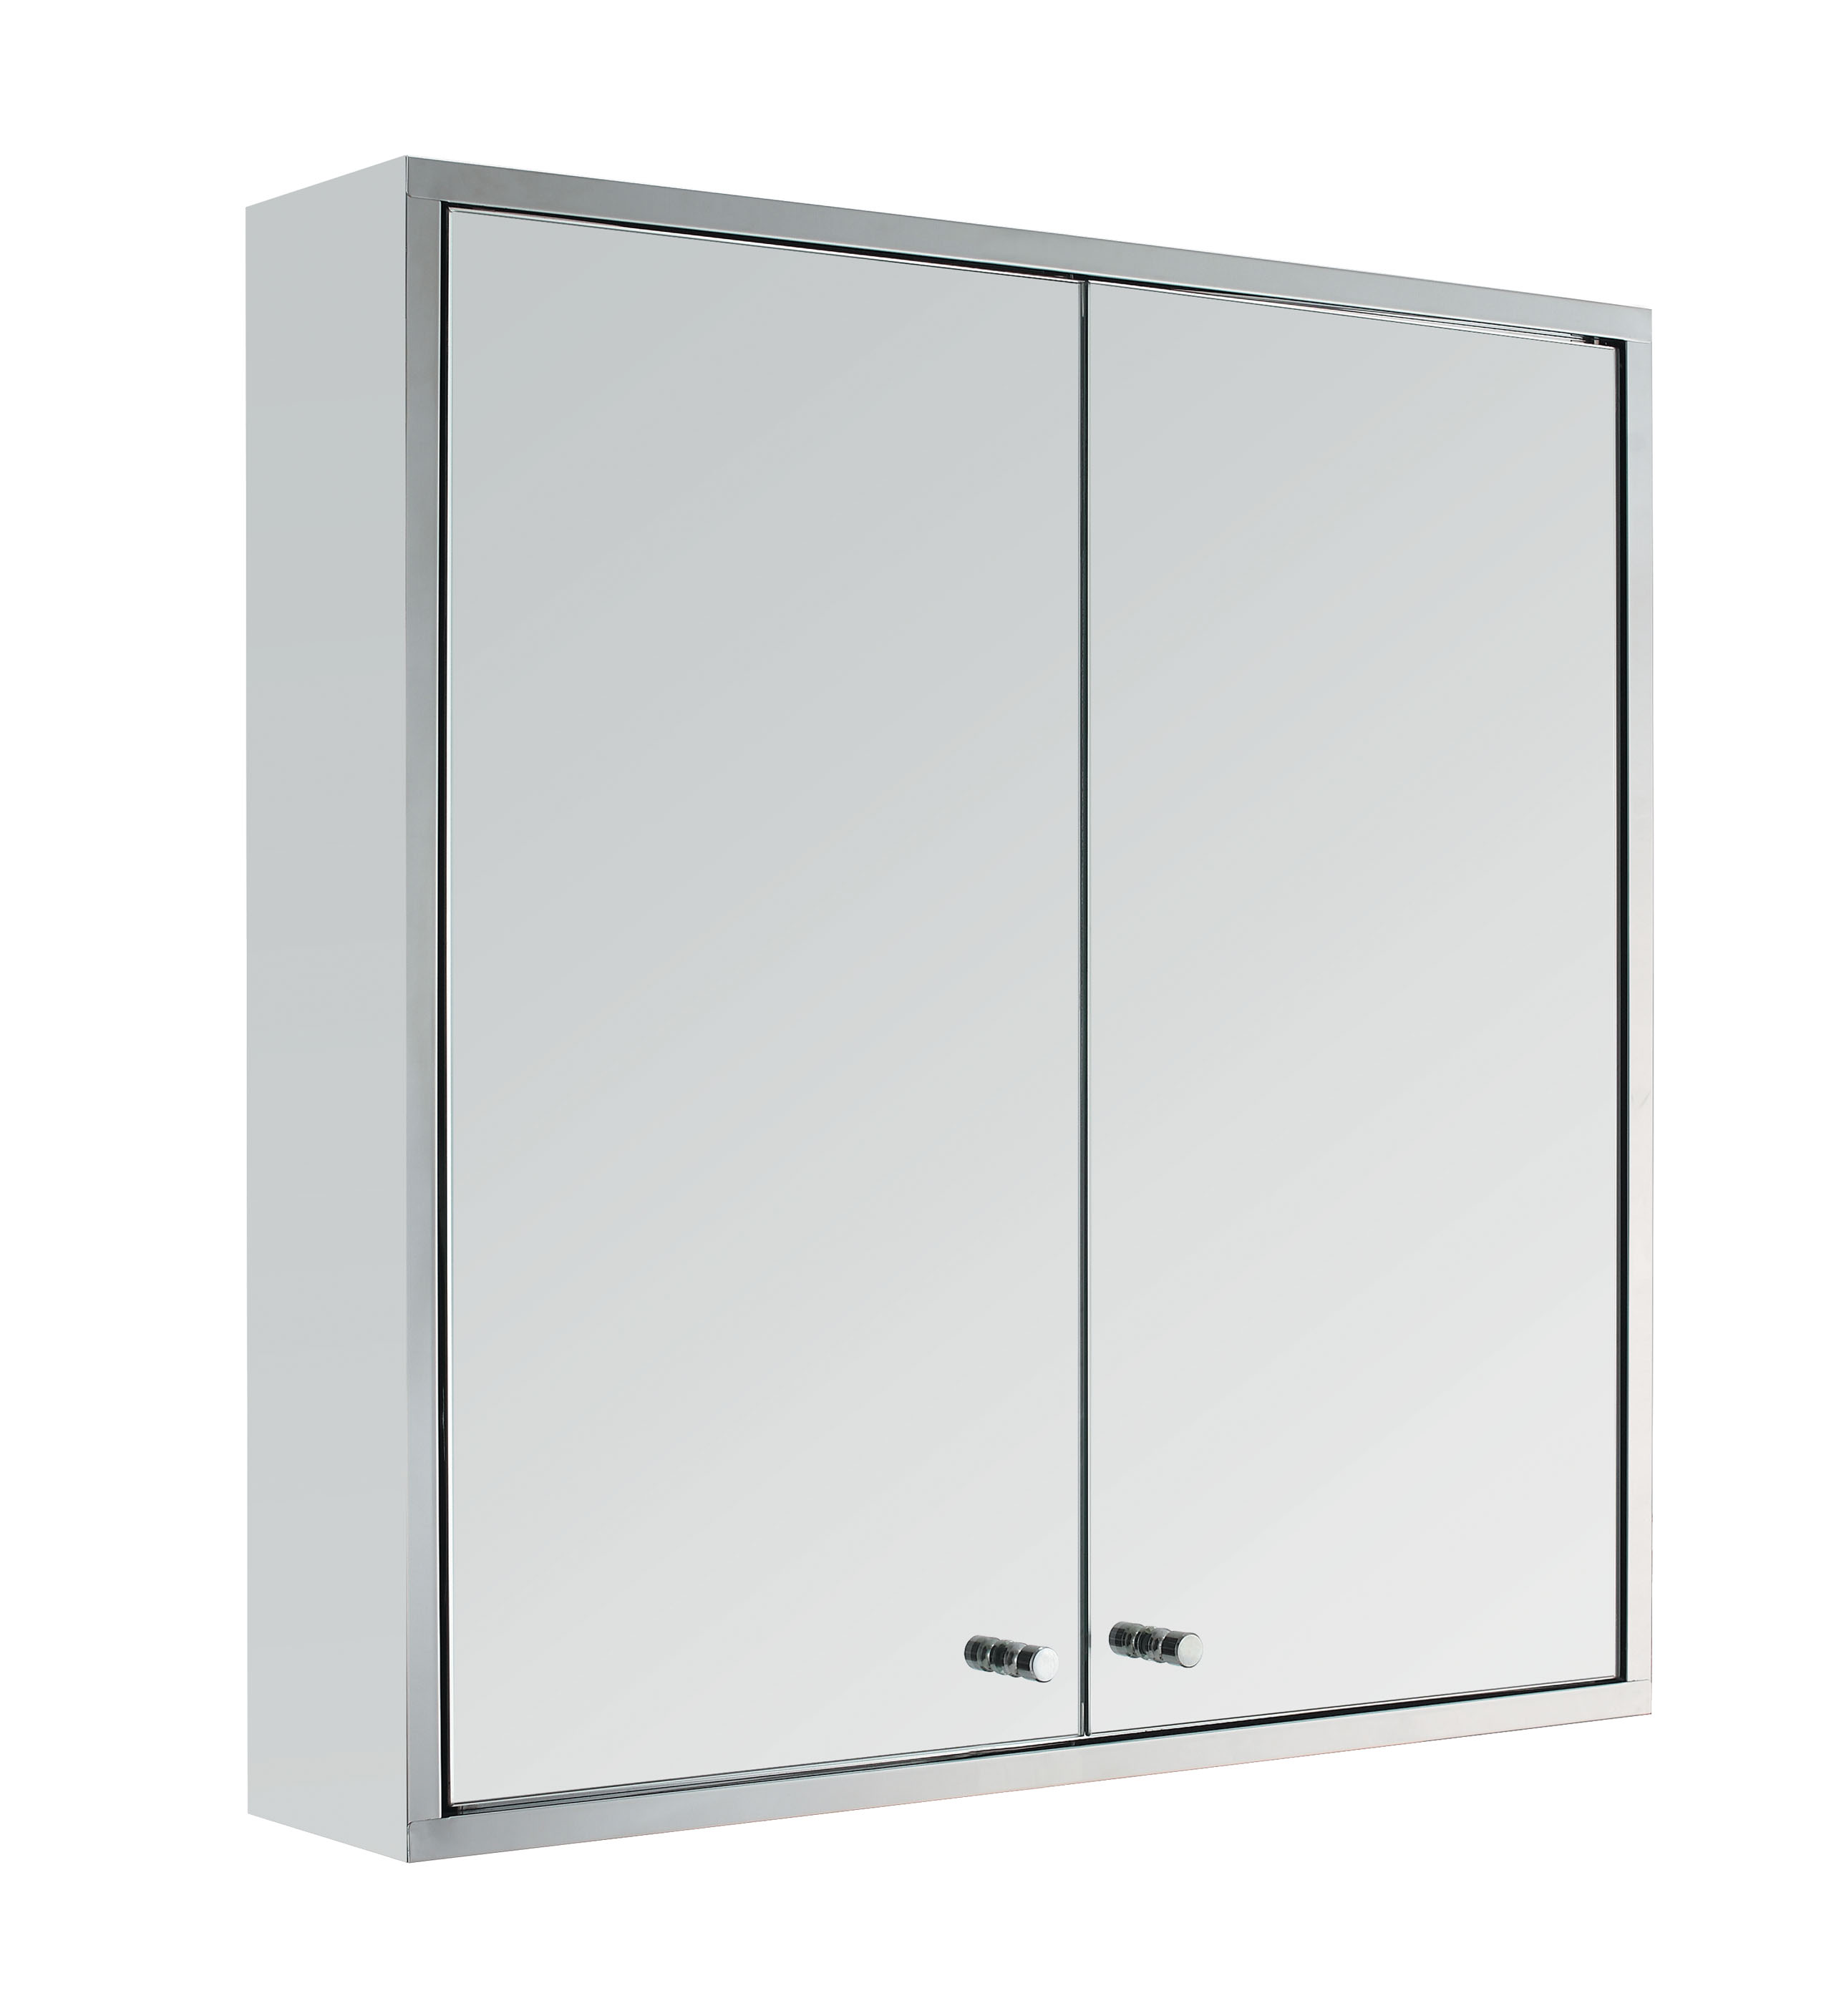 stainless steel double door wall mount bathroom cabinet